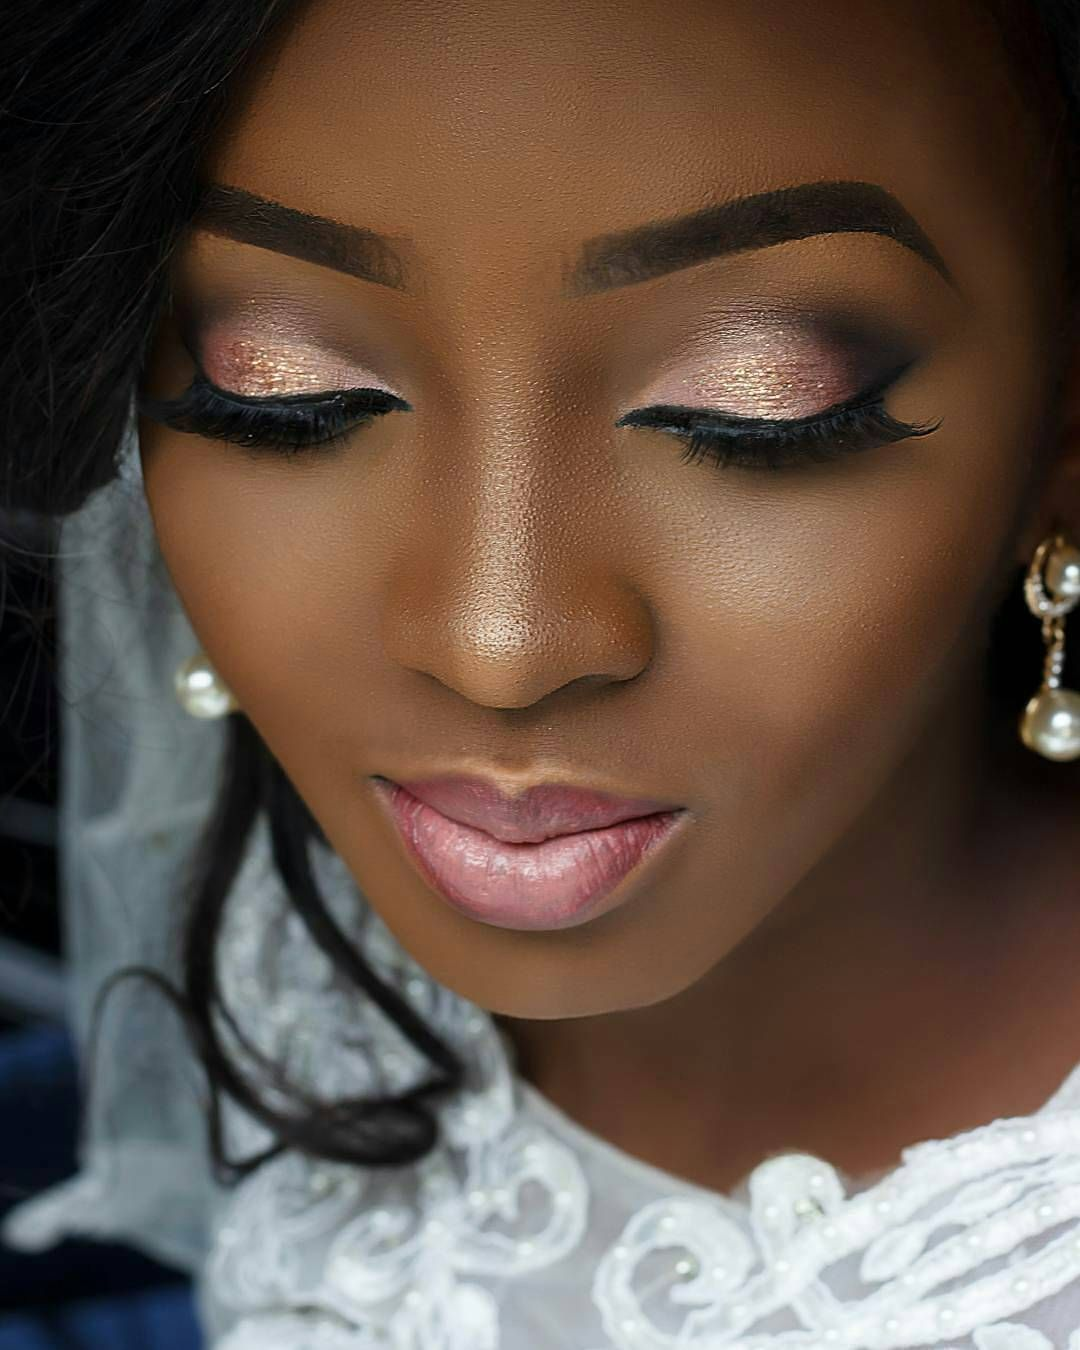 Stunning bride isotope30. Captured by mielphotography